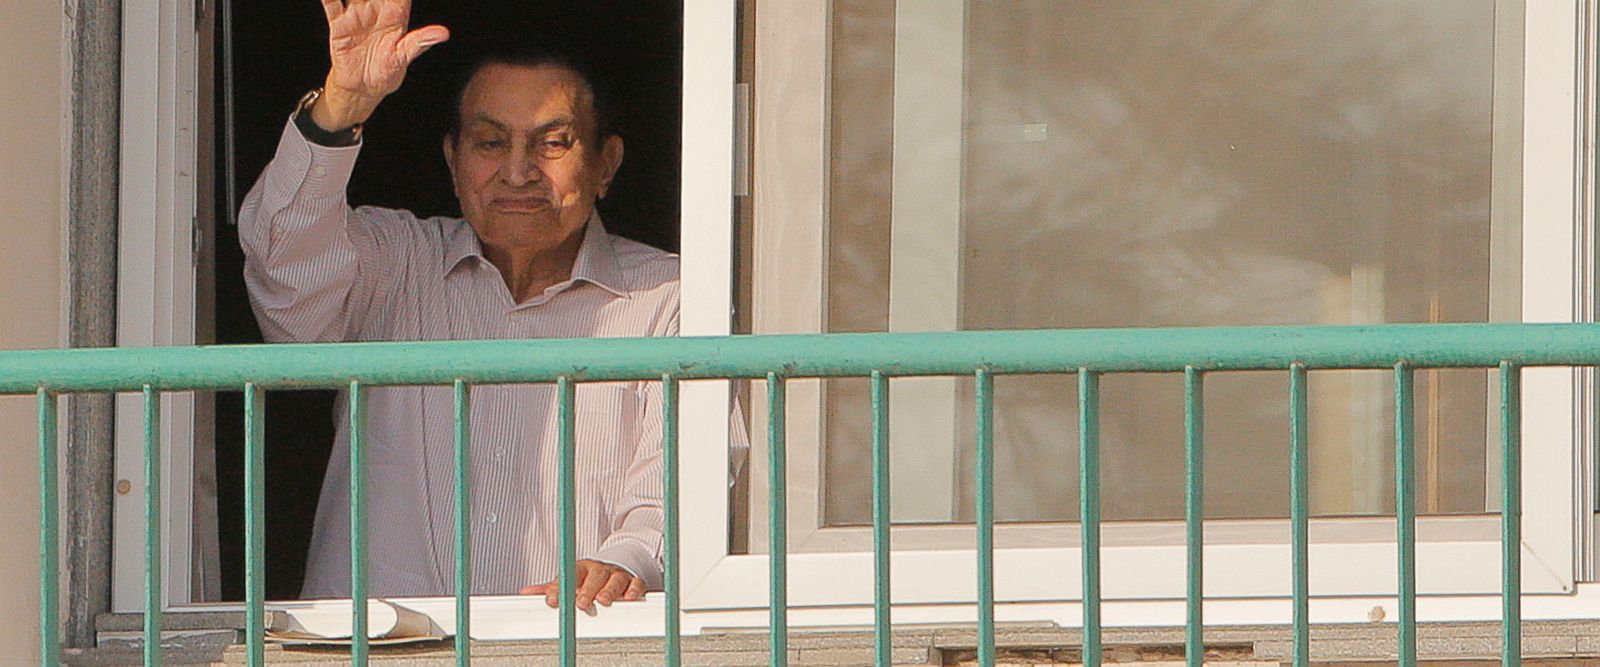 Egypt's Mubarak Returns Home After Years-Long Detention